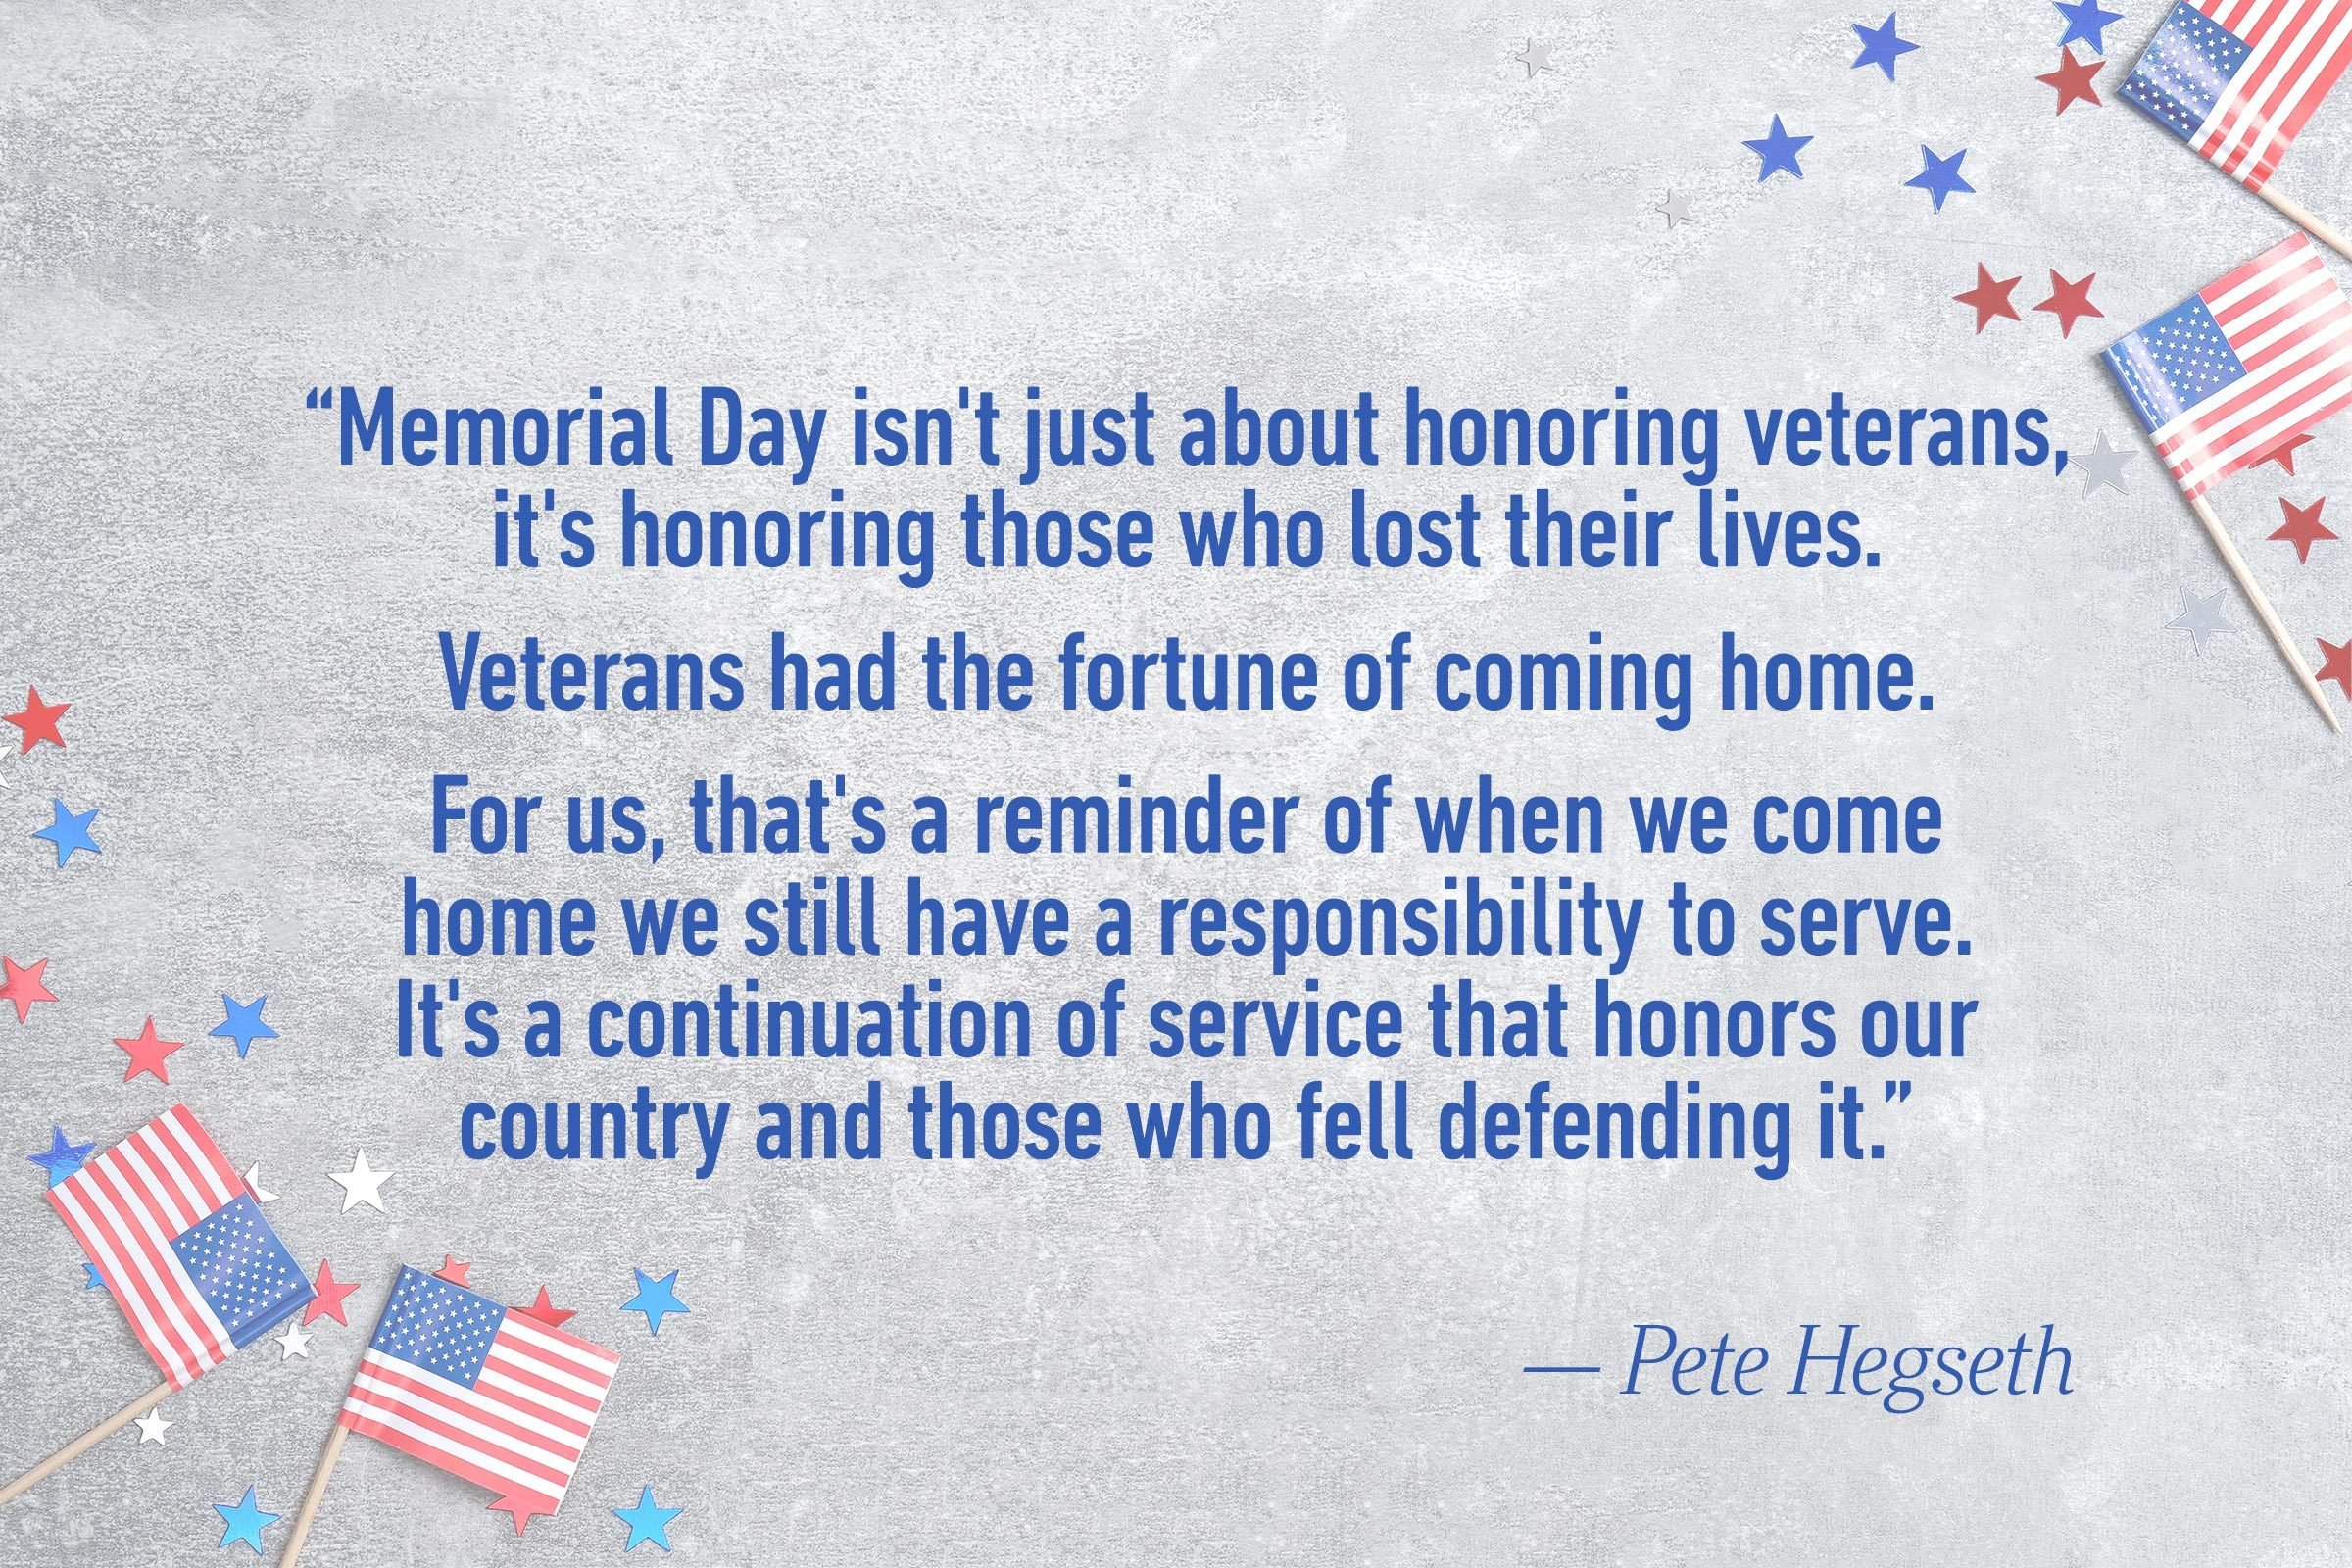 """Memorial Day isn't just about honoring veterans, it's honoring those who lost their lives. Veterans had the fortune of coming home. For us, that's a reminder of when we come home we still have a responsibility to serve. It's a continuation of service that honors our country and those who fell defending it.""—Pete Hegseth"